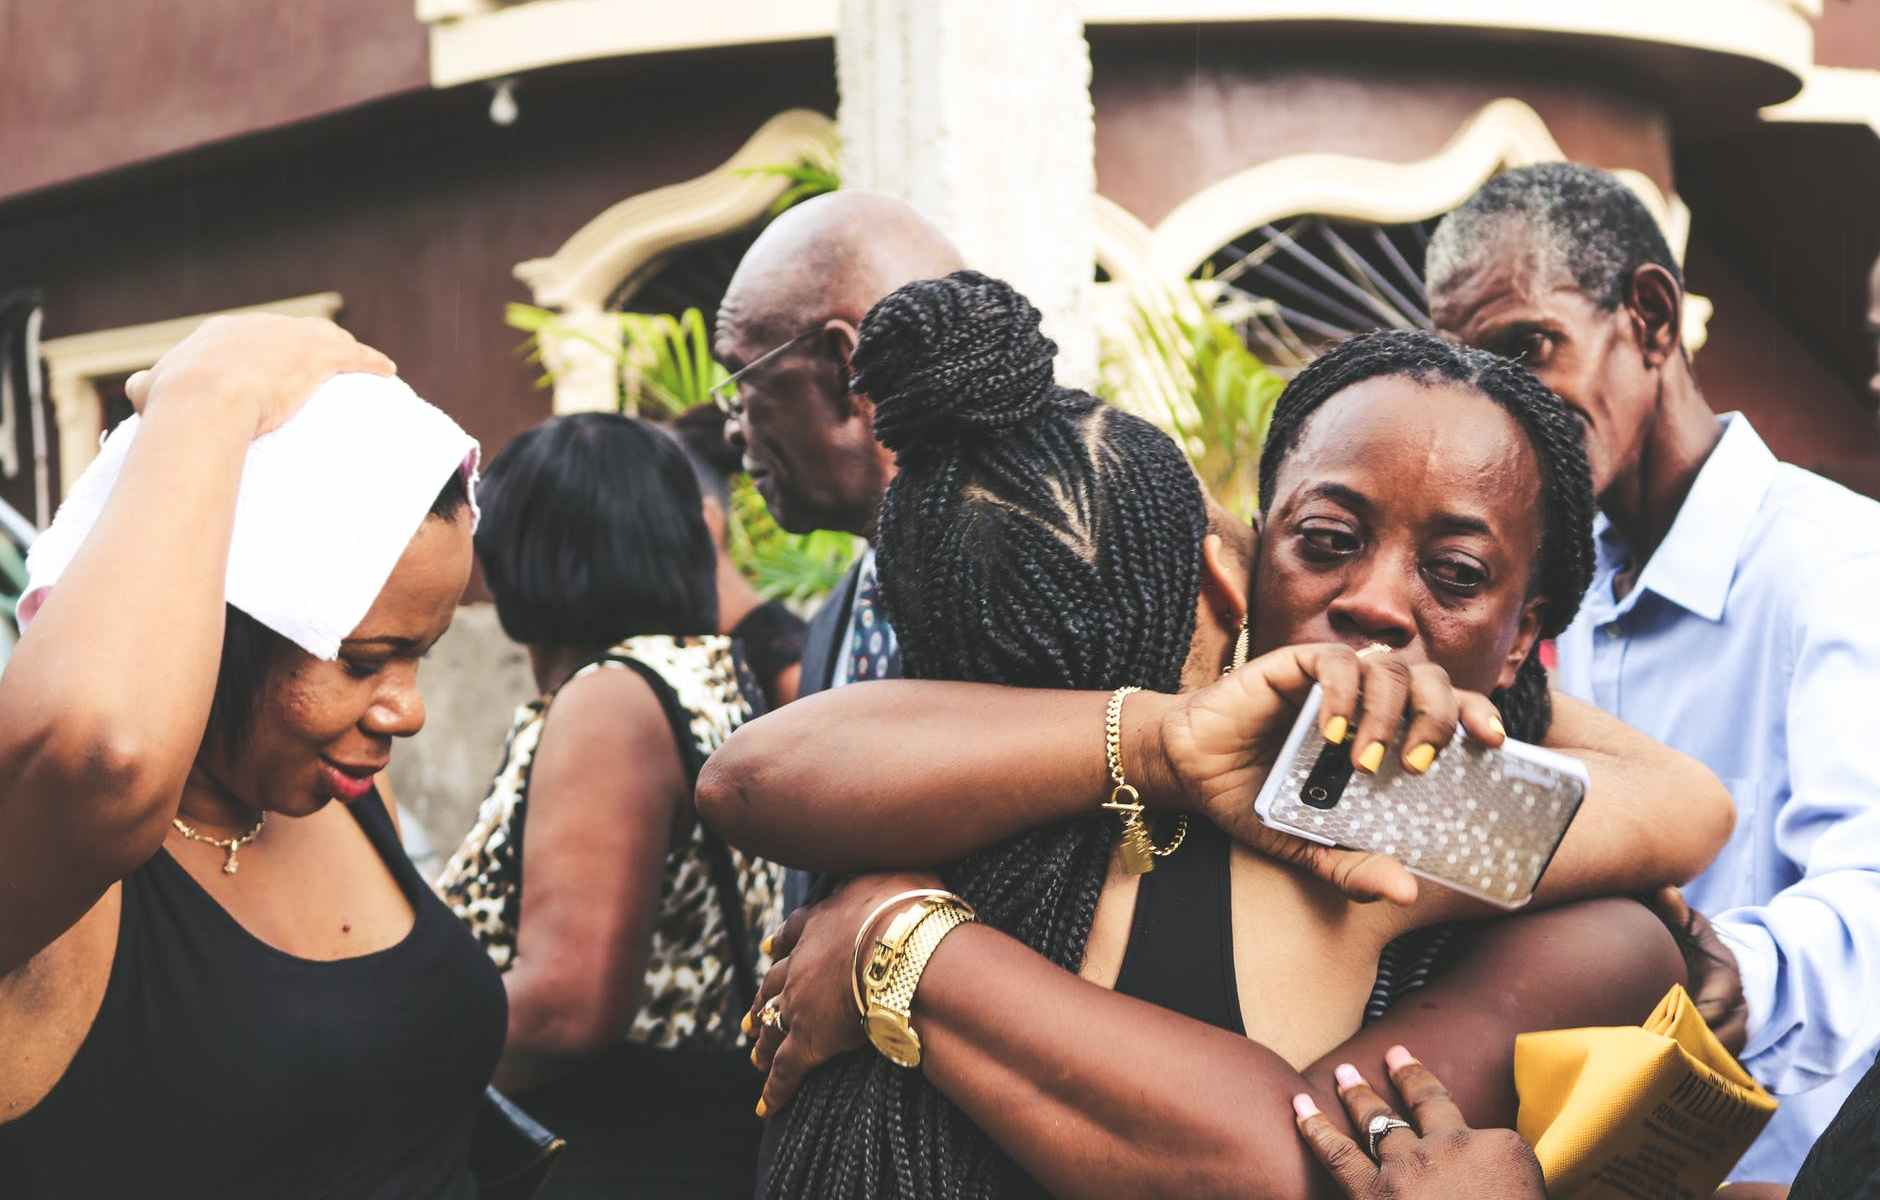 upset black woman embracing anonymous girlfriend near group of people